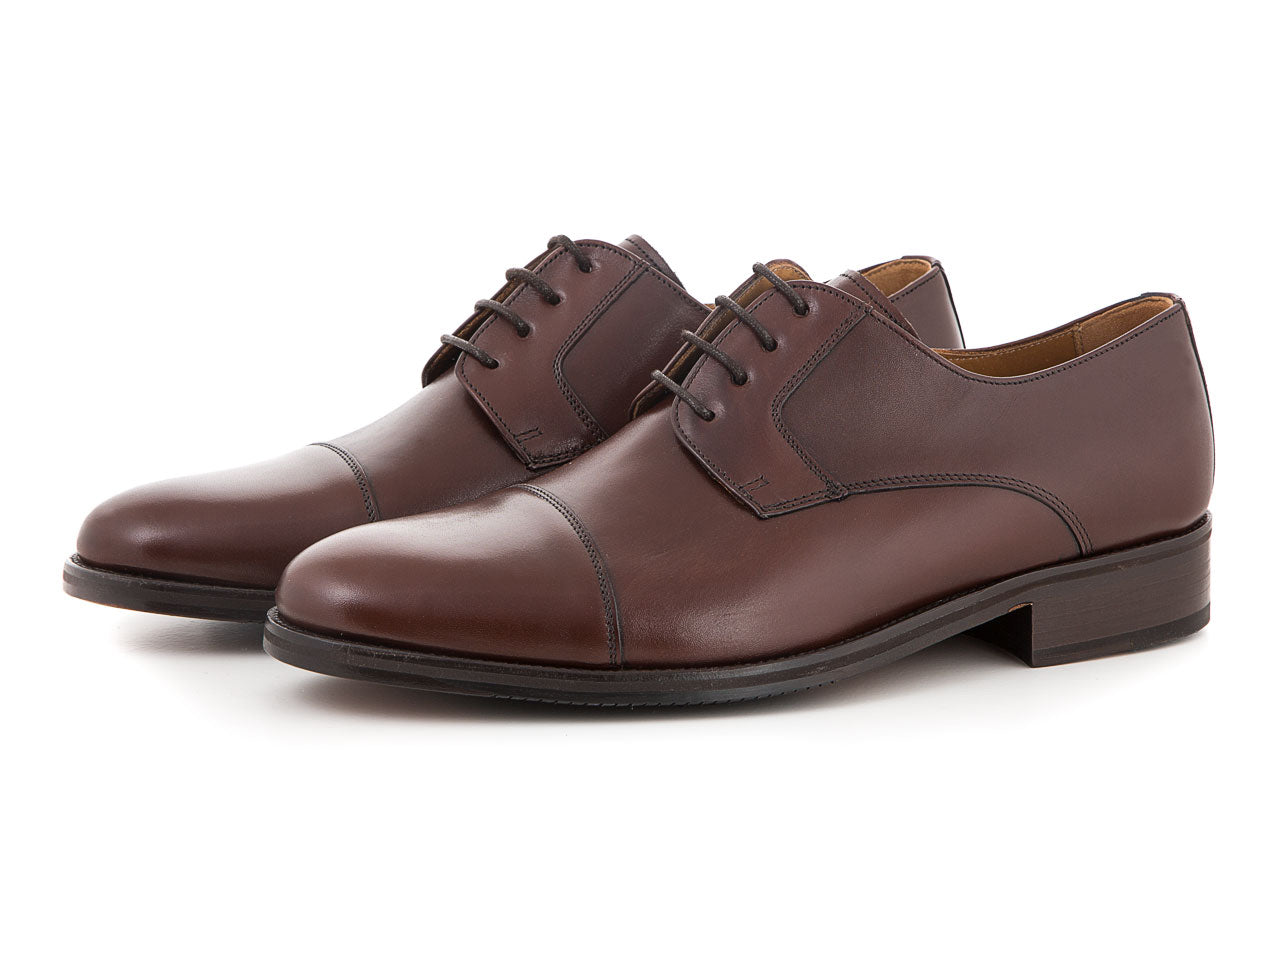 Handmade leather classic shoes for men | camino71